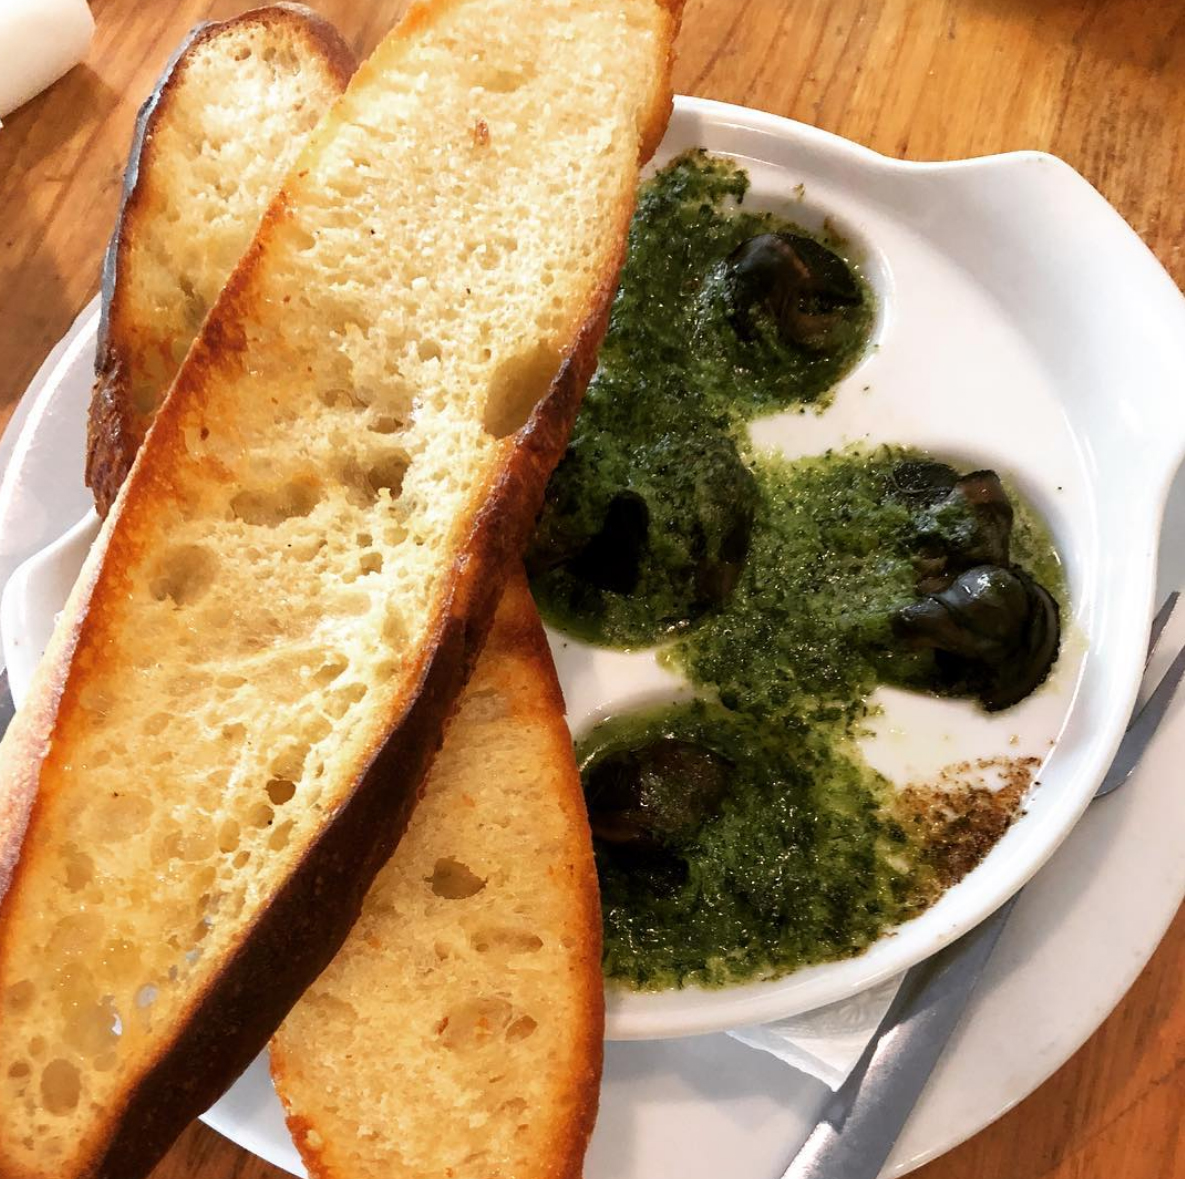 Fresh toasted bread, snails with herbs and butter